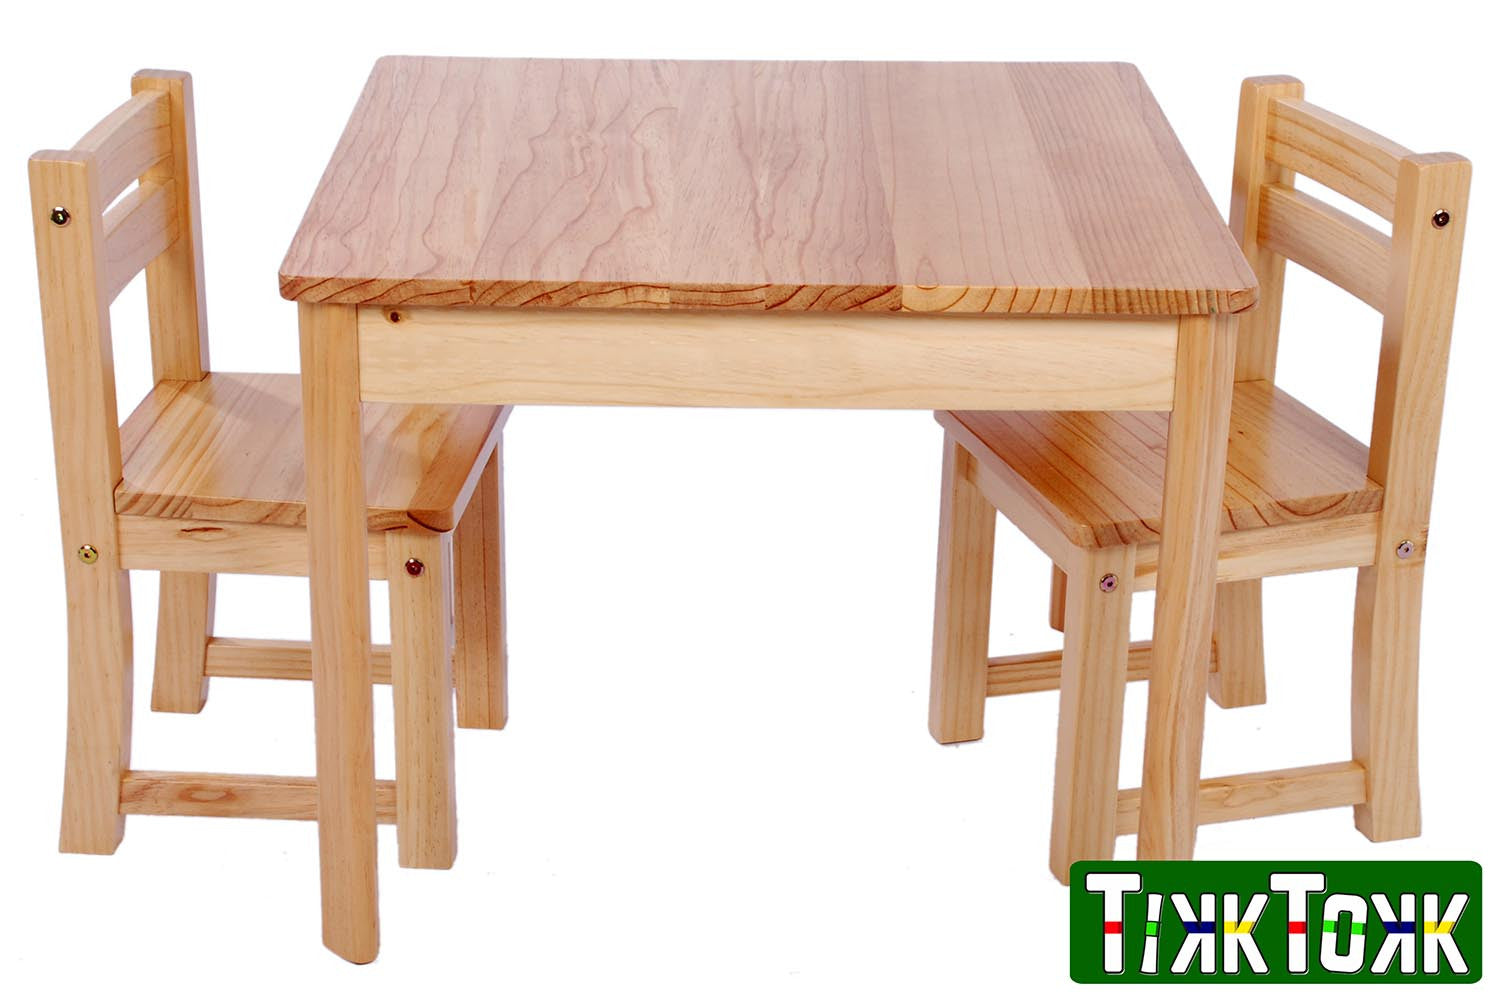 Tufstuf Junior Pine Table And Chairs Set, 50cm Table Height, 30cm Seat  Height